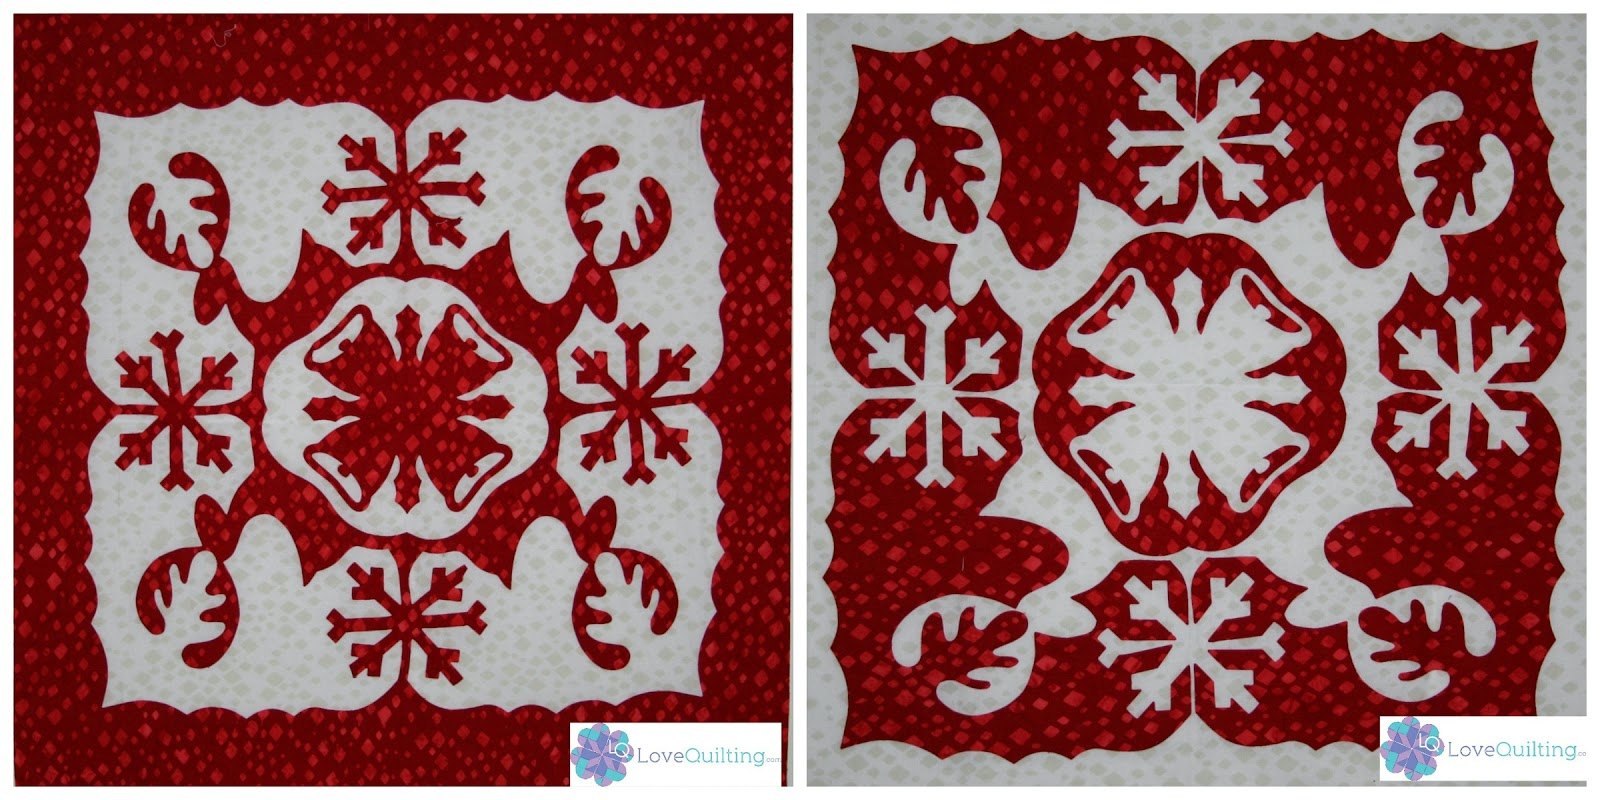 http://www.lovequilting.com/shop/kits/santa-way-kit/